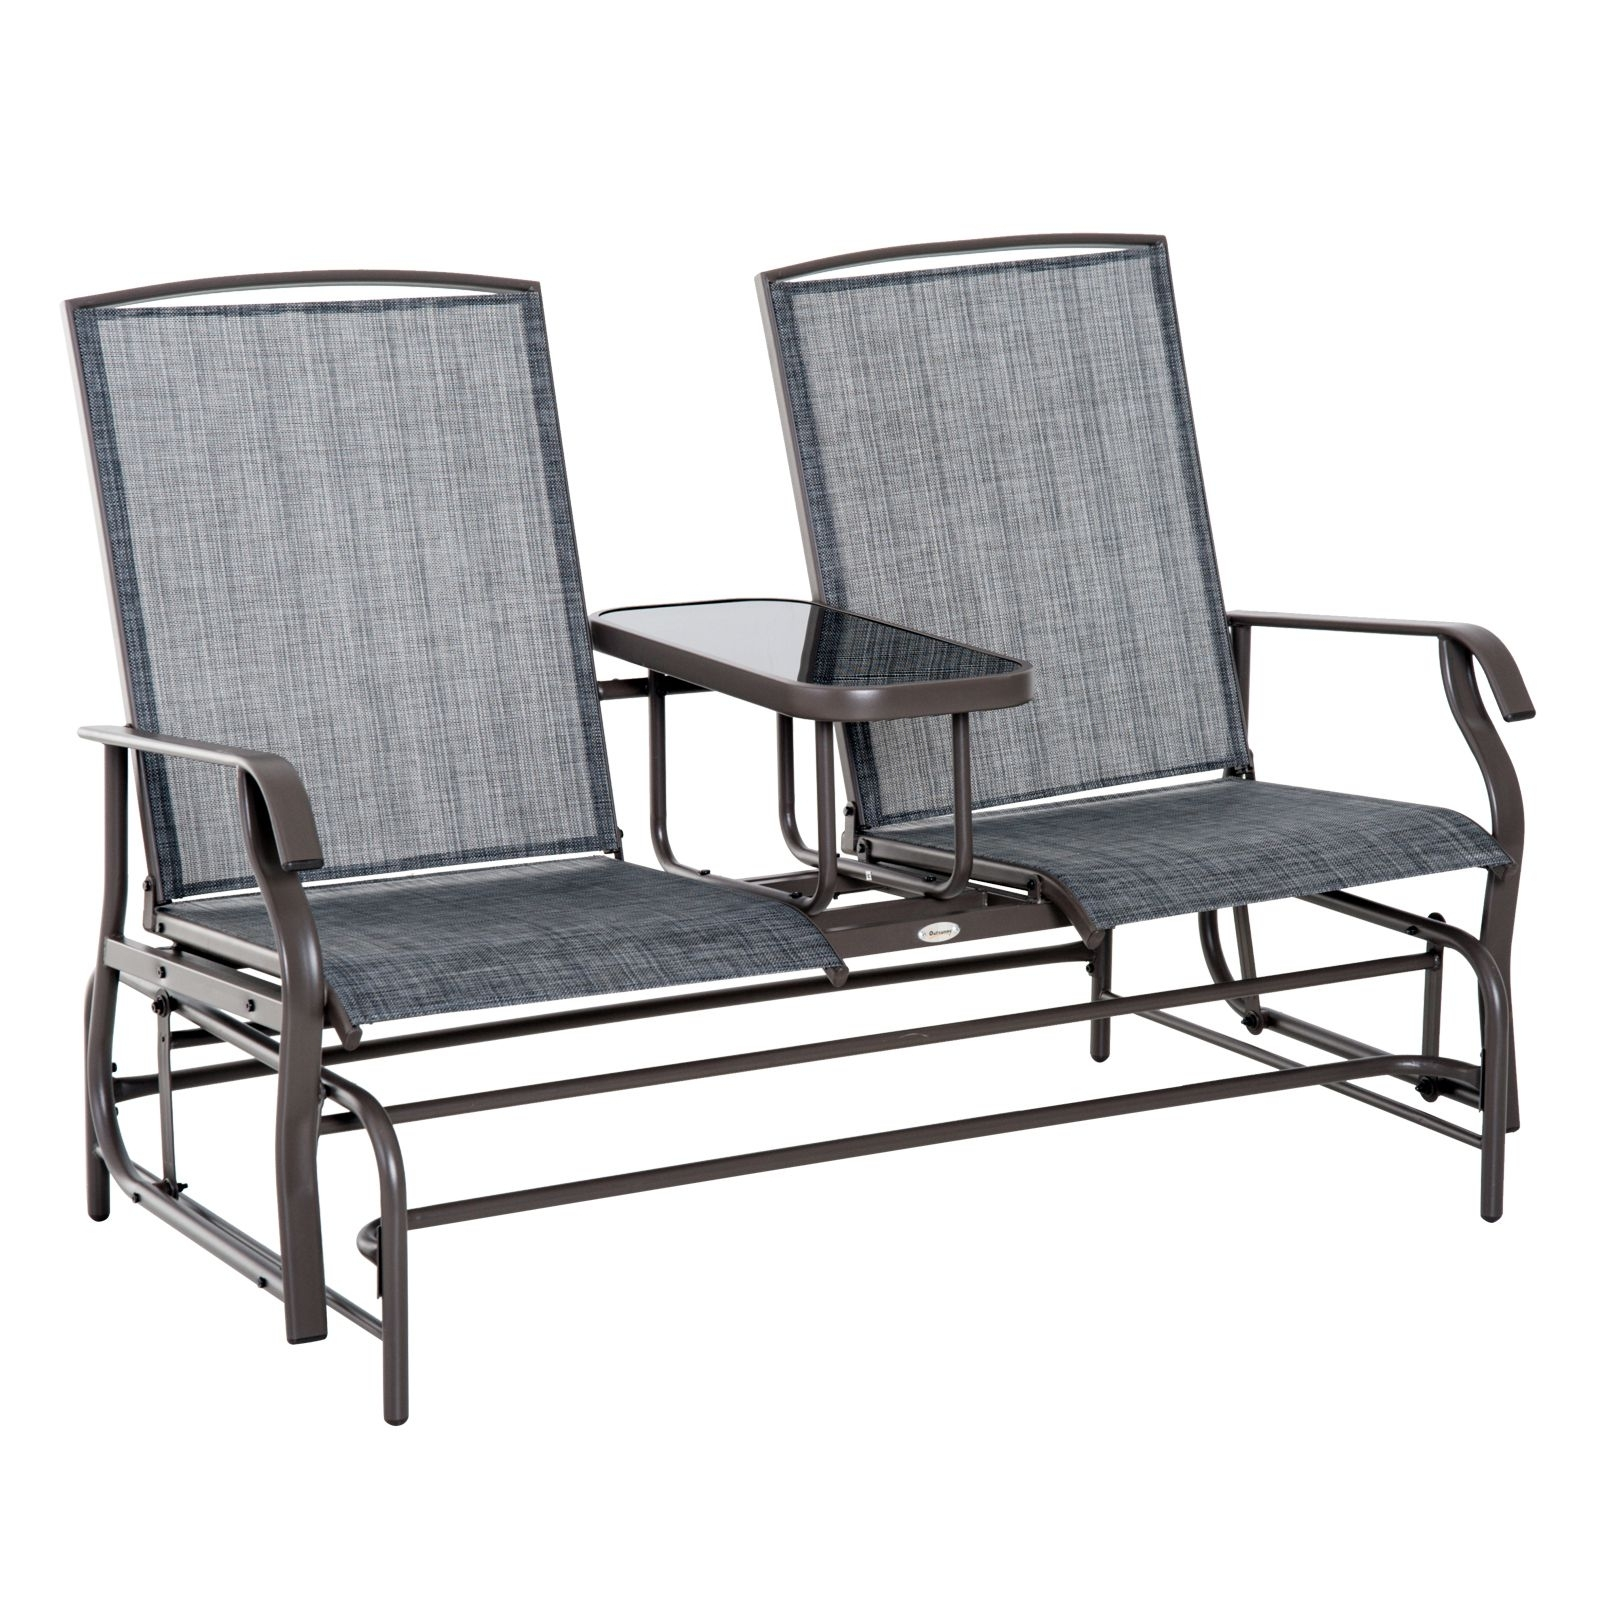 Buy Outsunny Metal Double Swing Chair Glider Rocking Chair Seat Within Patio Rocking Chairs And Gliders (#3 of 15)